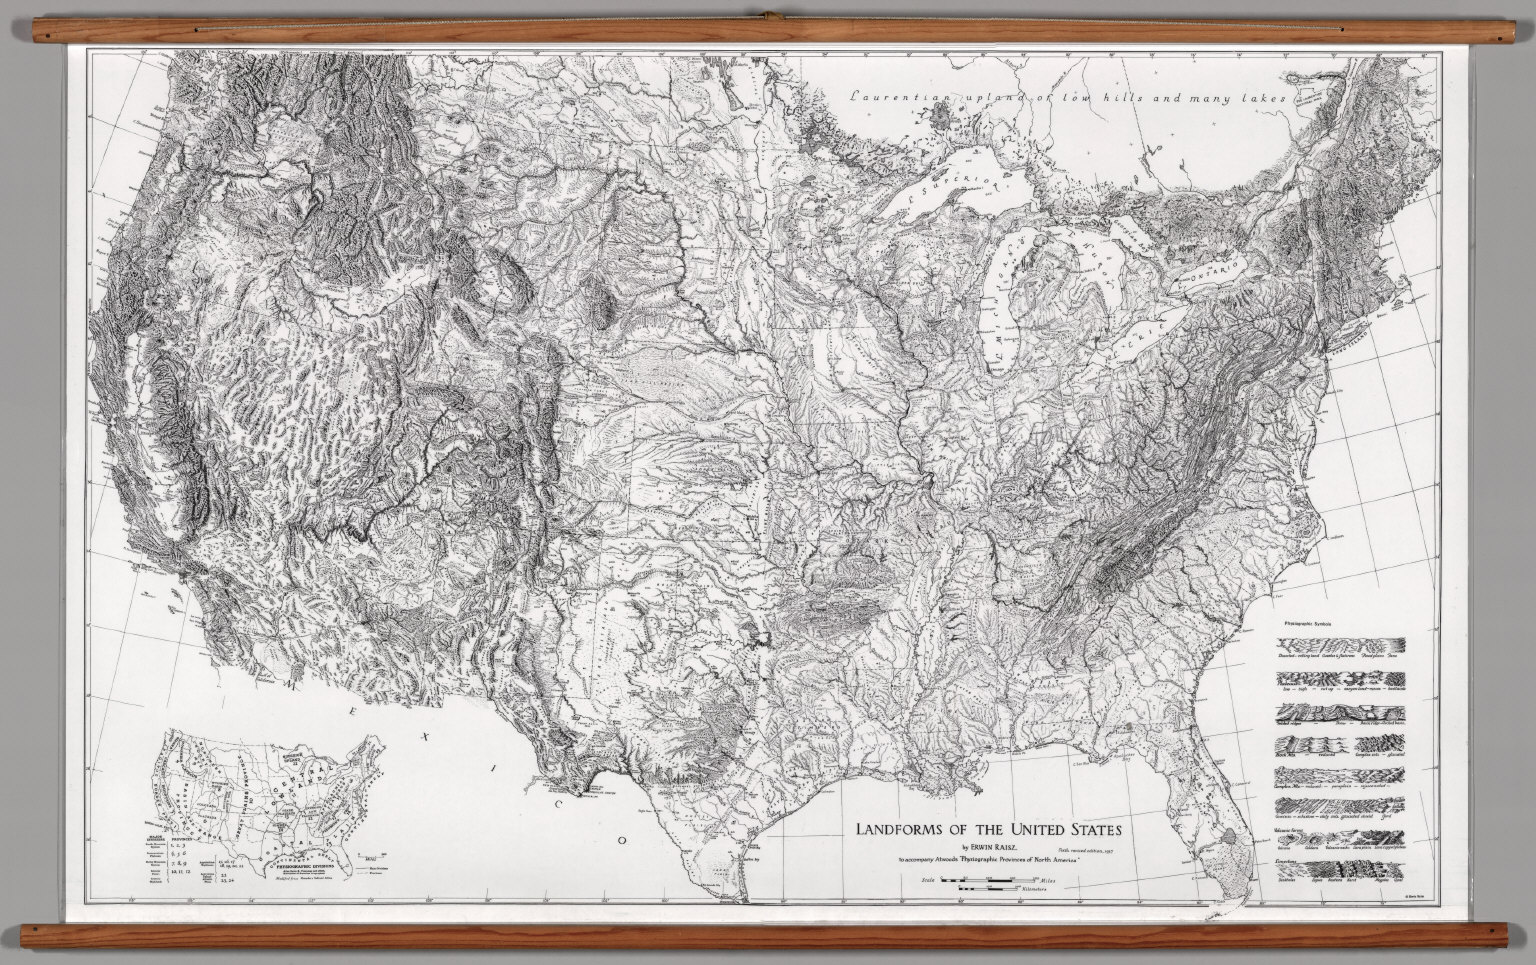 United States -- Physical Landforms (Raisz). - David Rumsey ... on second lady of the united states, latitude of the united states, pipeline maps of the united states, navigable waters of the united states, thematic maps of the united states, economic regions of the united states, the government of the united states, longitude of the united states, northwest region of the united states, military uniforms of the united states, absolute location of the united states, railroad maps of the united states, six regions of the united states, the seal of the united states, different regions of the united states, river systems of the united states, the preamble of the united states, national seal of the united states, pacific region of the united states, blank page of the united states,